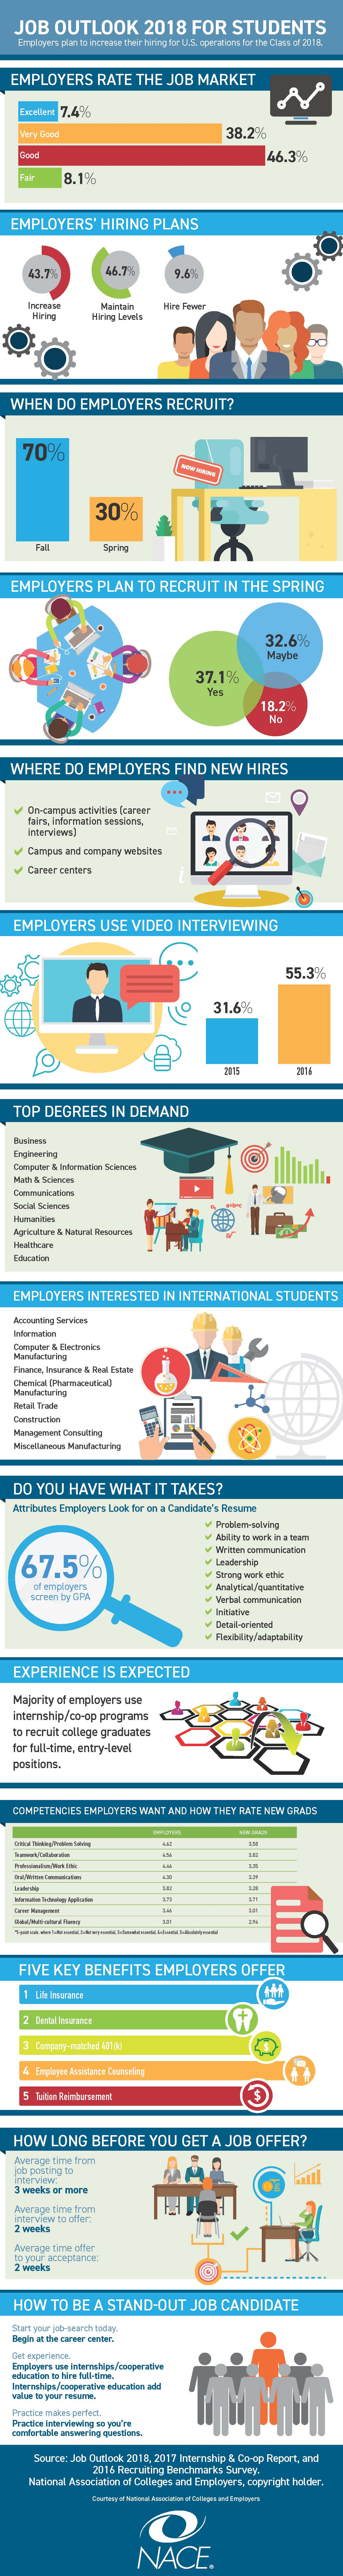 NACE 2018 Job Outlook for Students Infographic